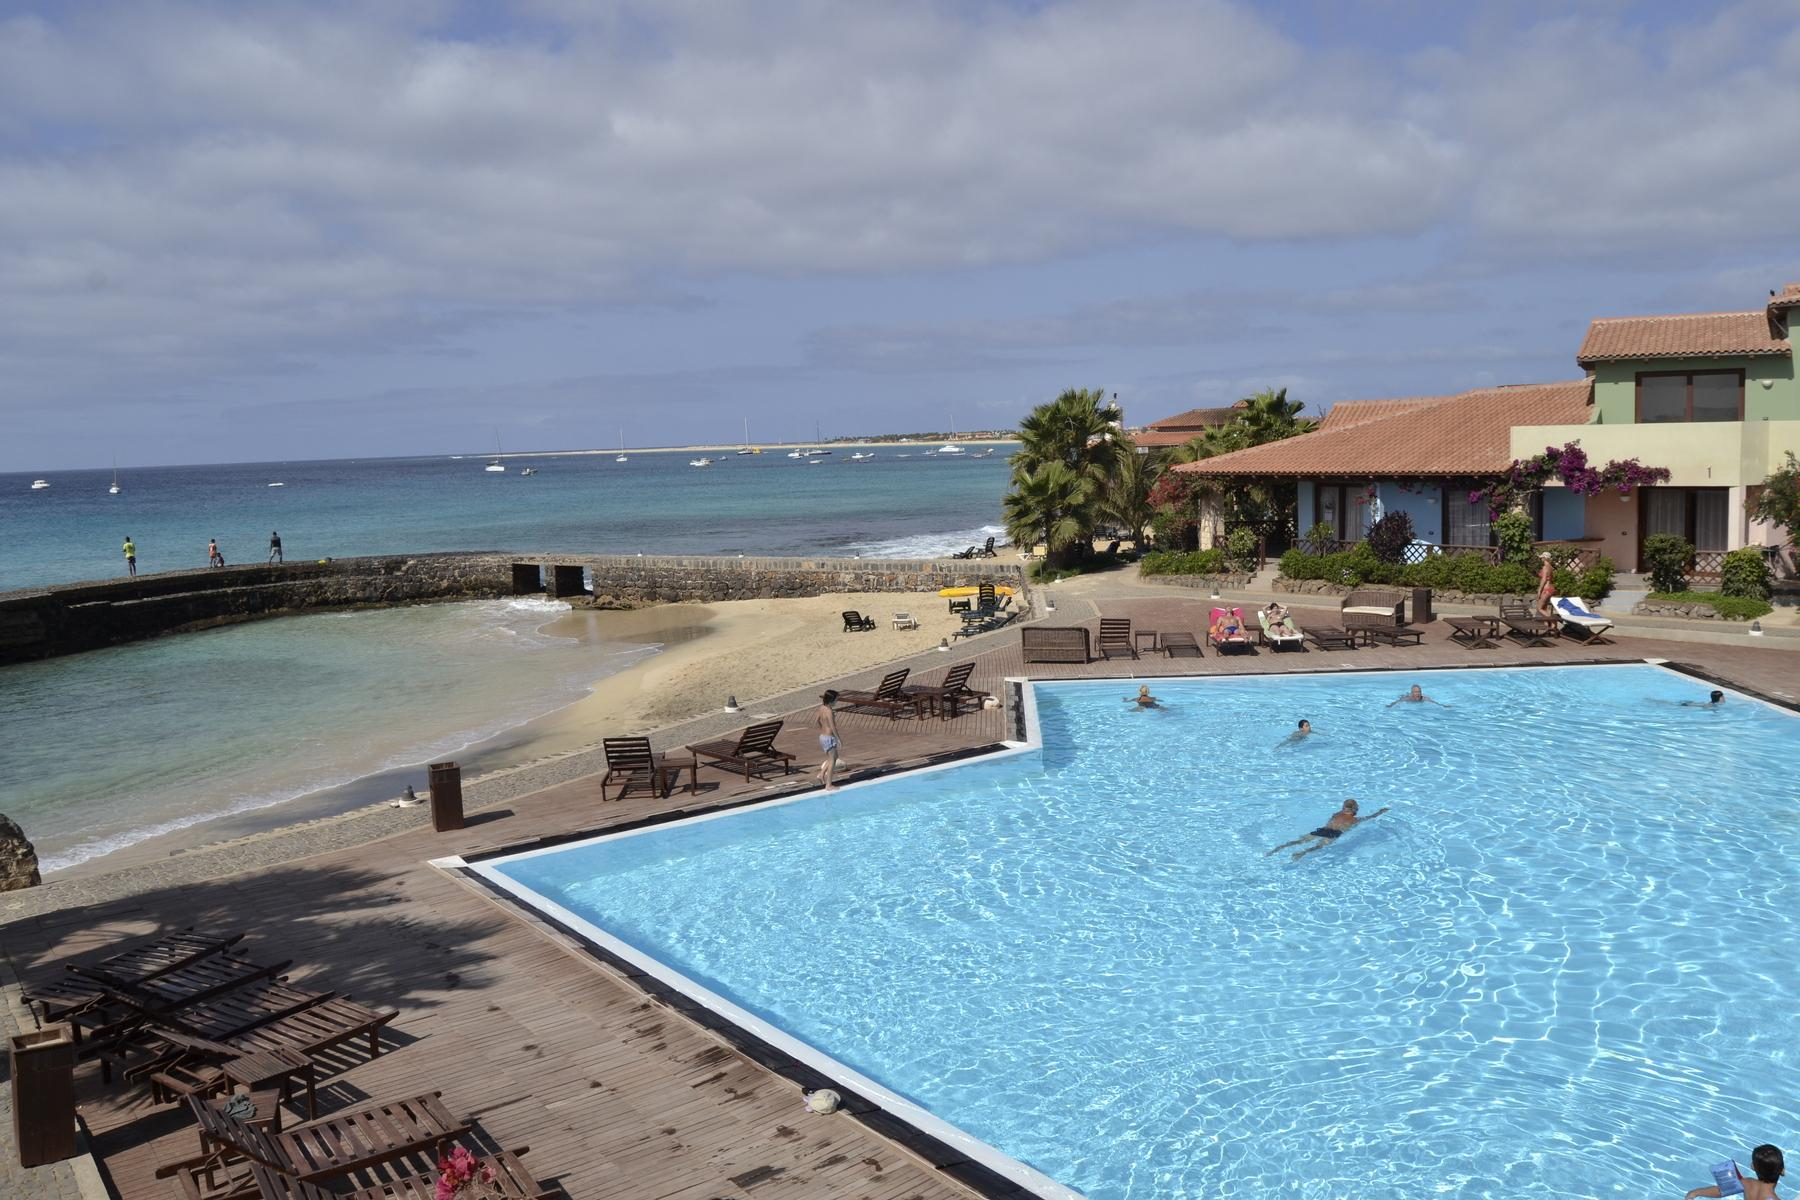 Porto Antigo Residence in Santa Maria (Cape Verde), Cape Verde Islands